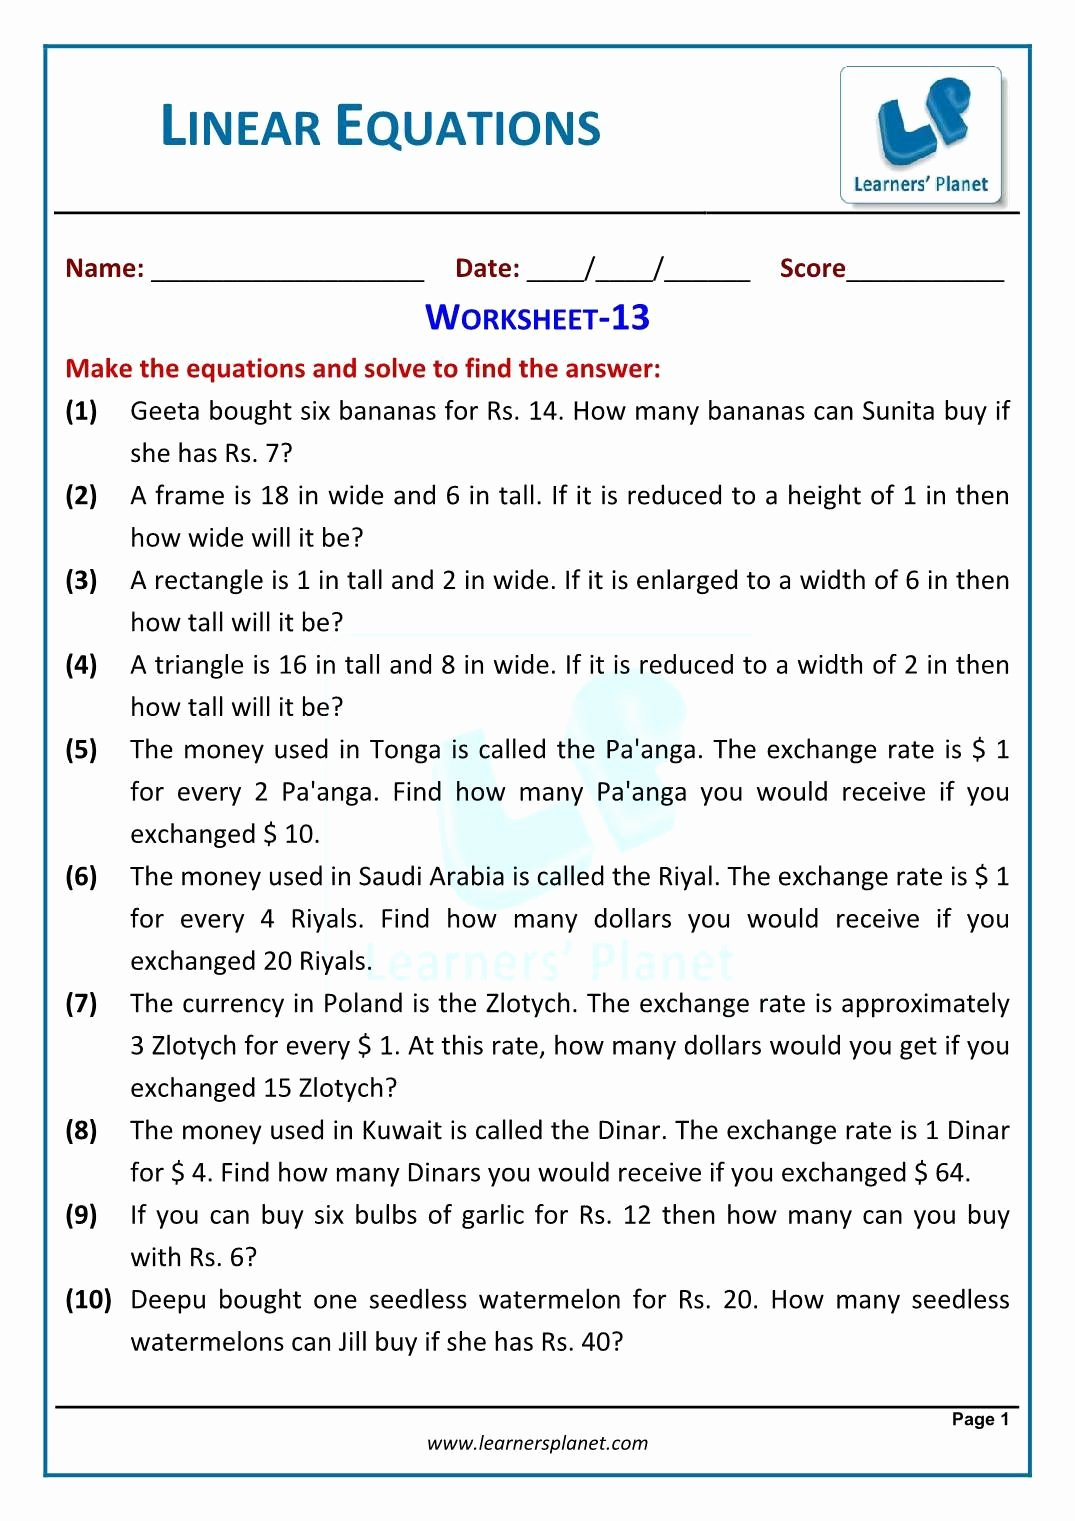 Linear Equation Word Problems Worksheet Printable 3 Inequality Word Problems Worksheet 7th Grade Single